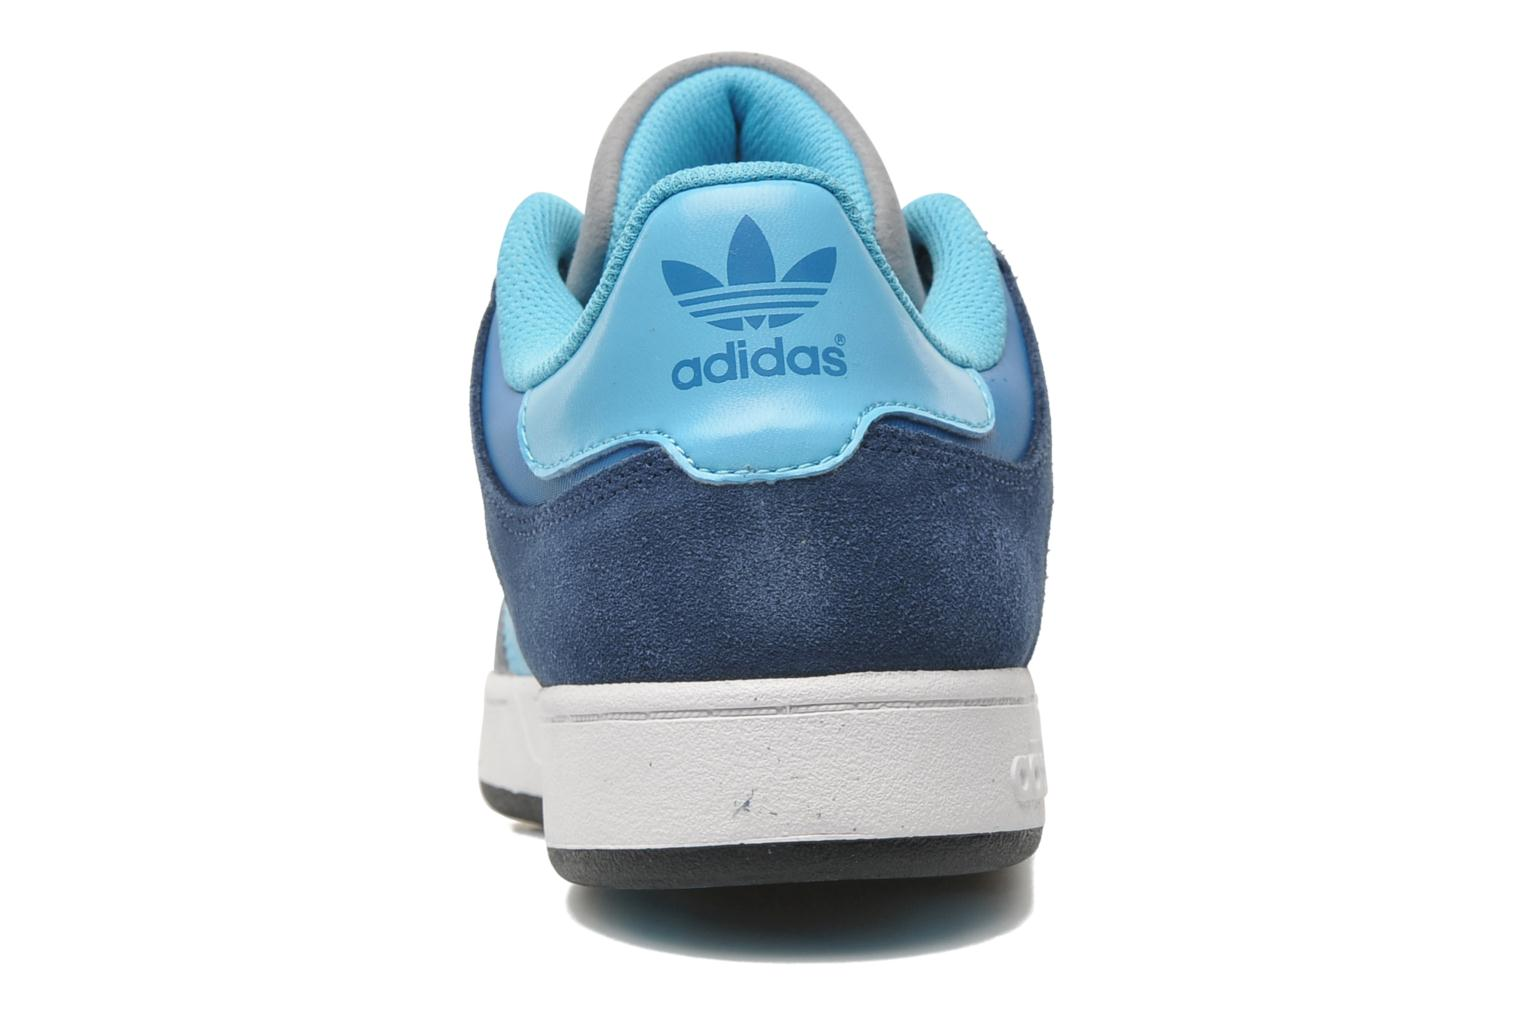 Varial Low MID GREY S14 / SAMBA BLUE S14 / UNIFORM BLUE